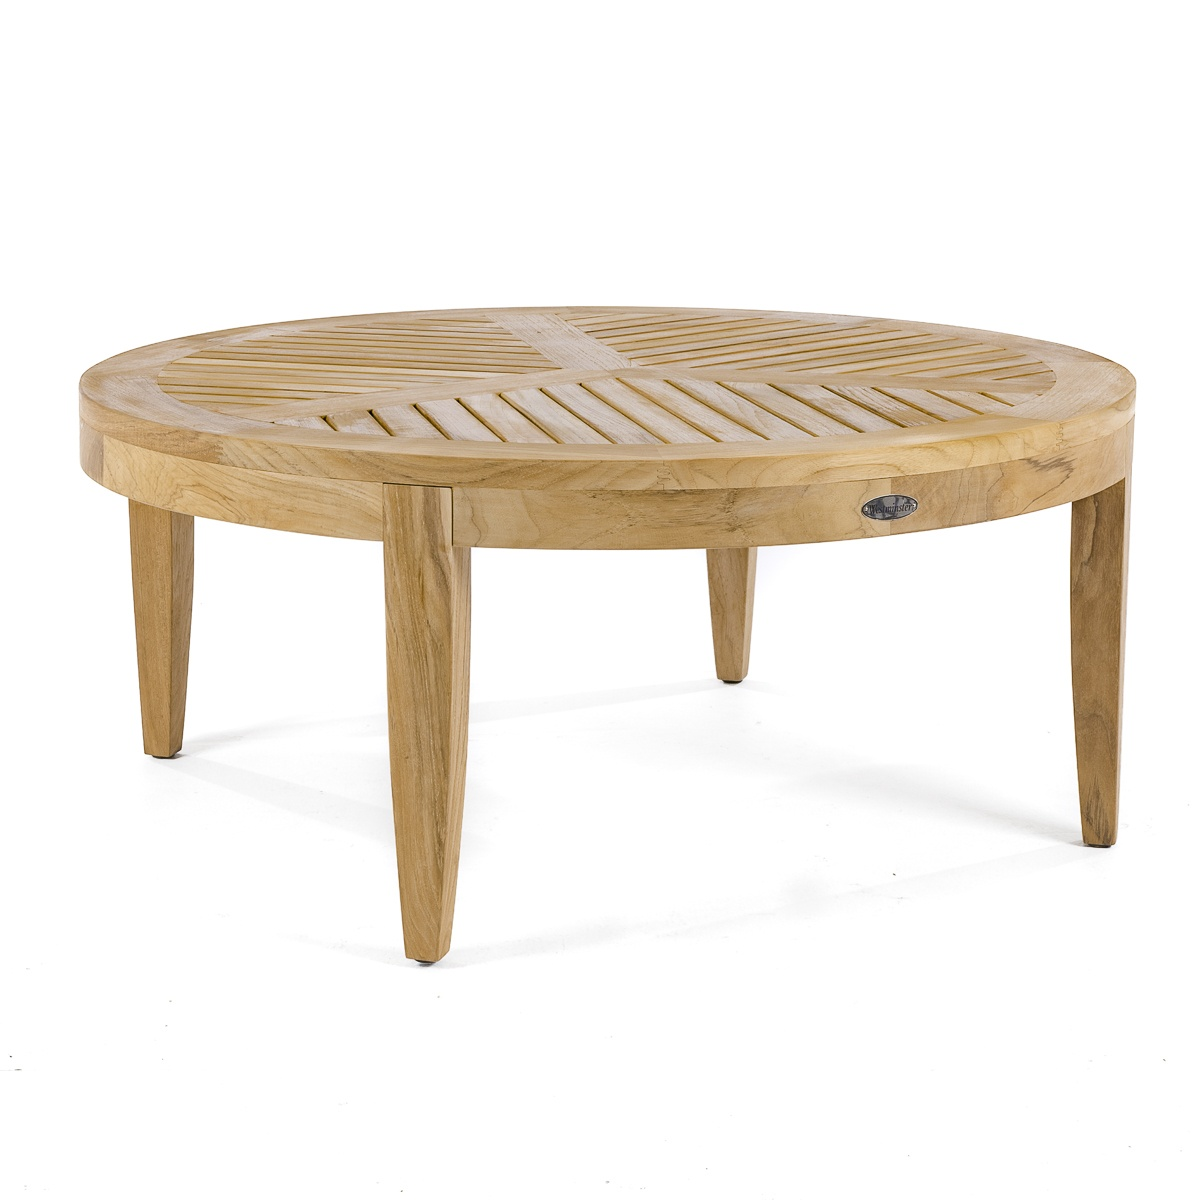 Teak Burger Coffee Table: Laguna Teak Round Coffee And Sofa Table